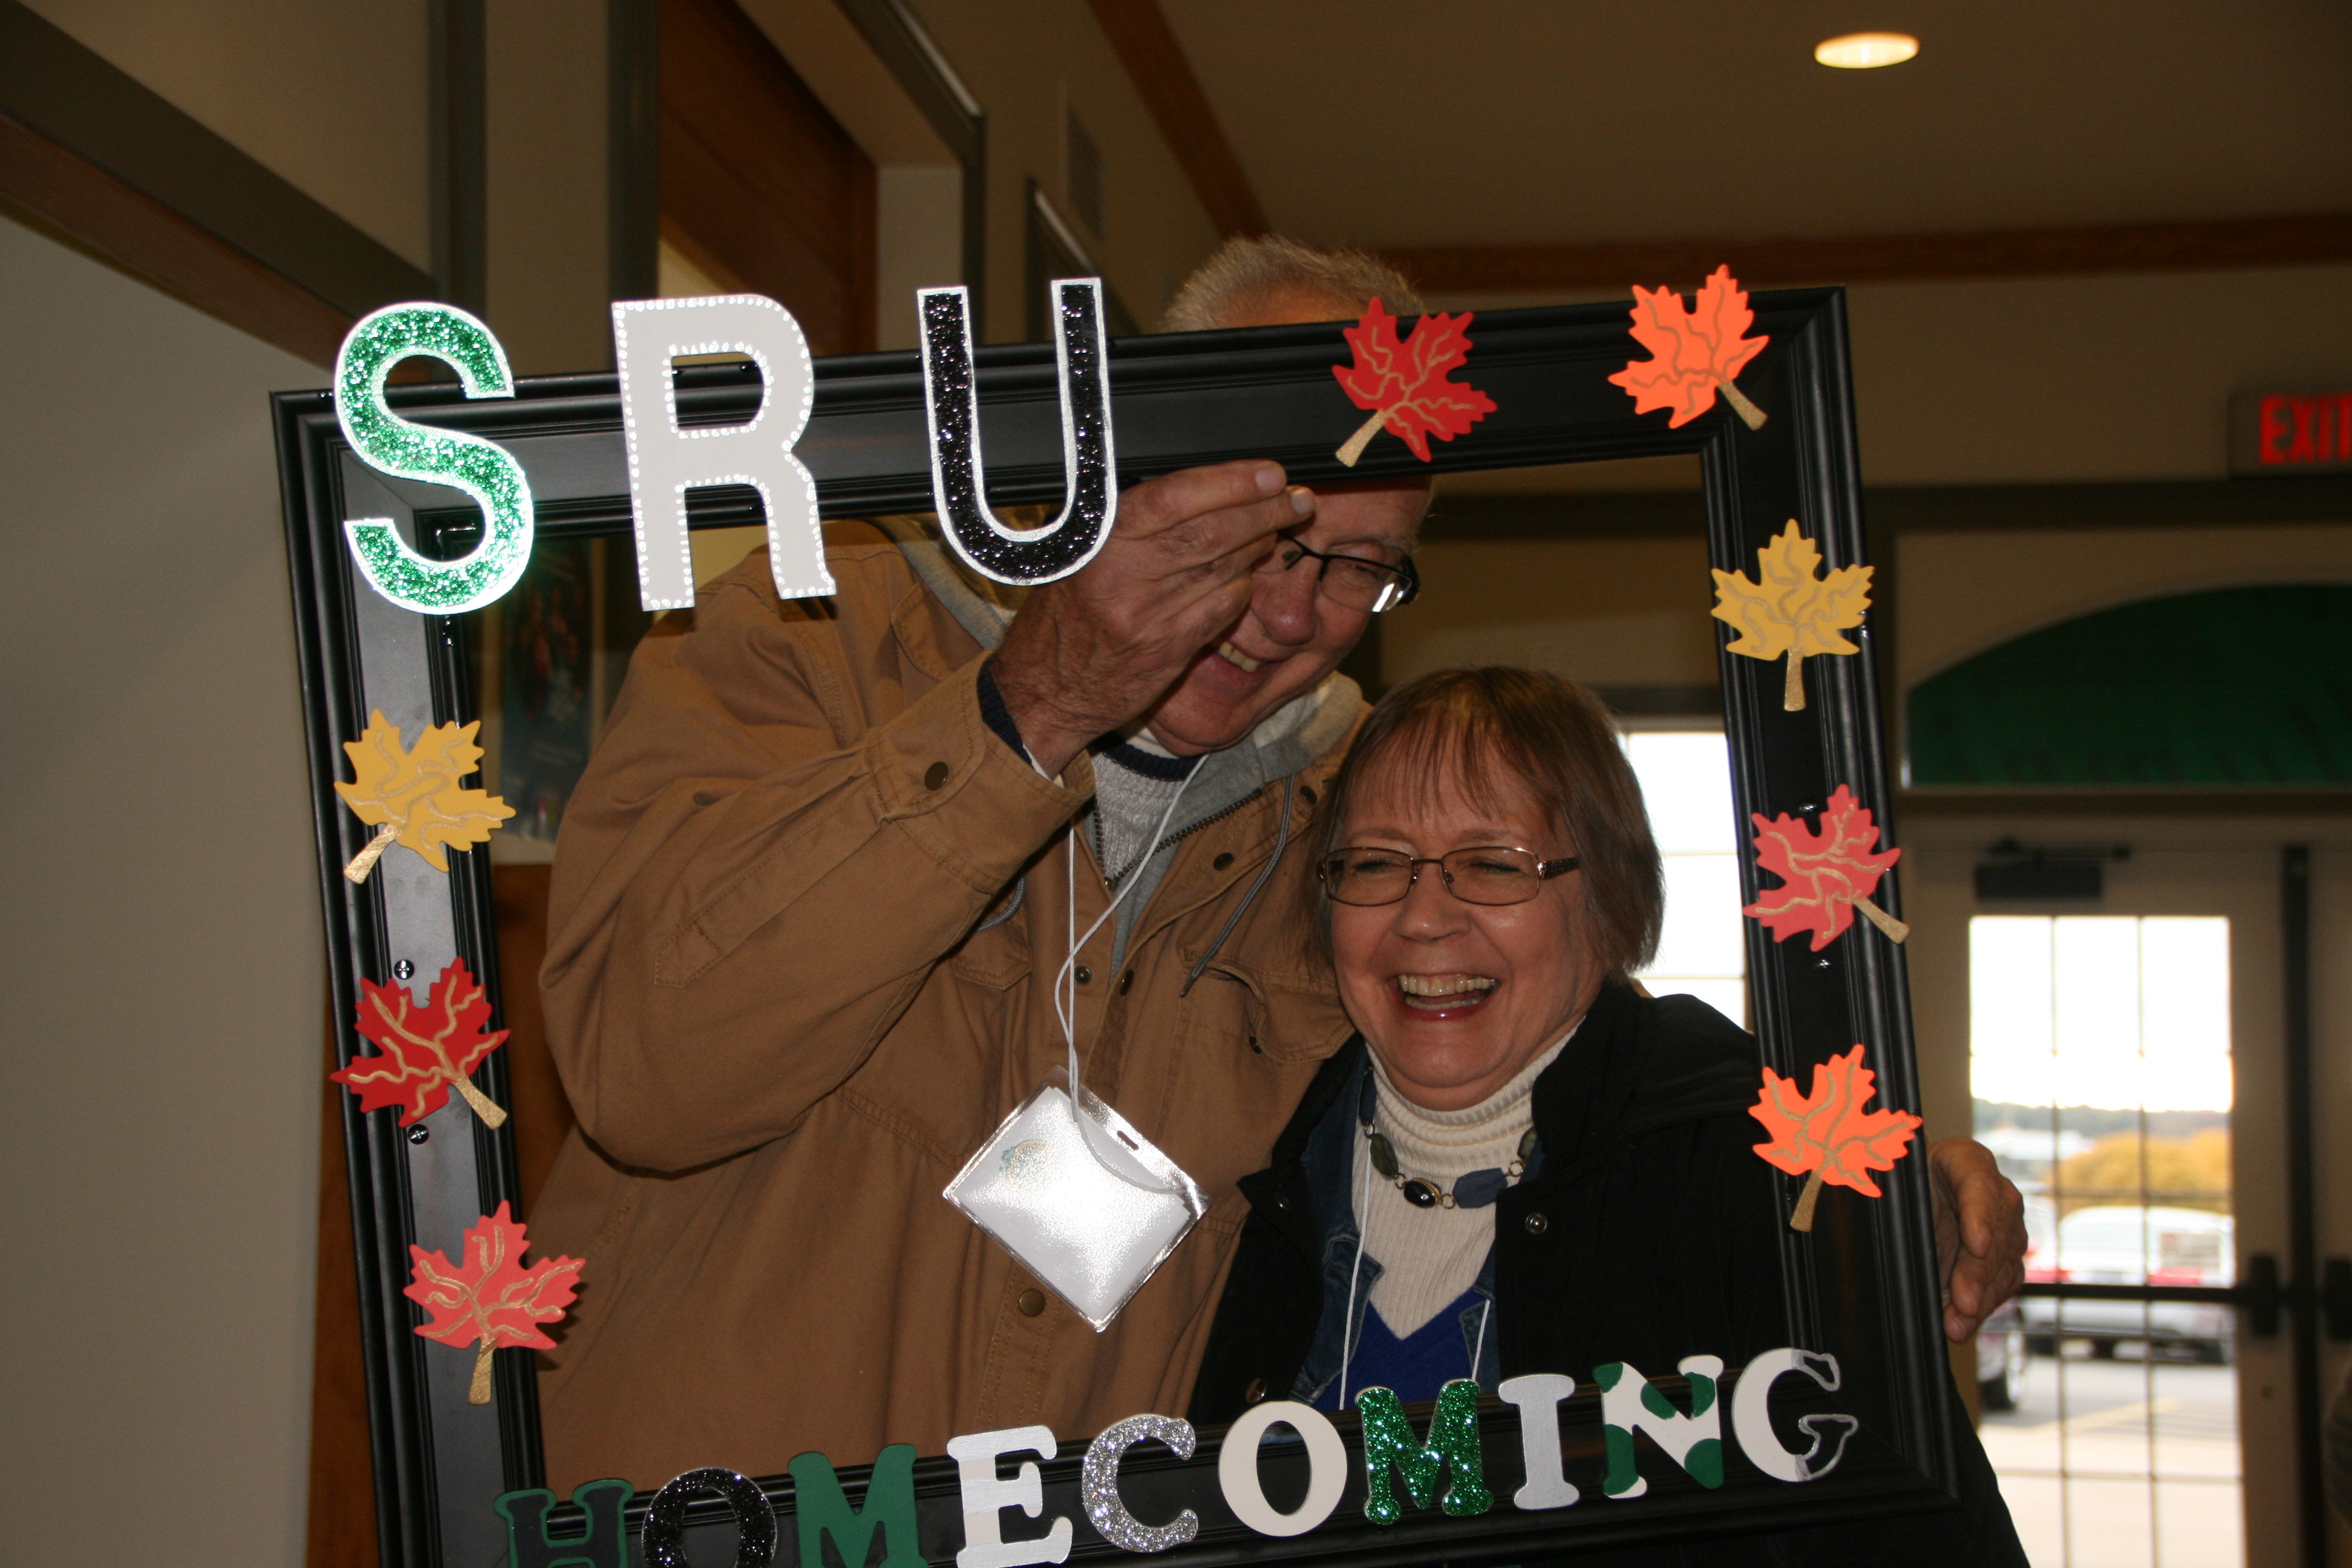 Married couple holding up SRU Homecoming frame